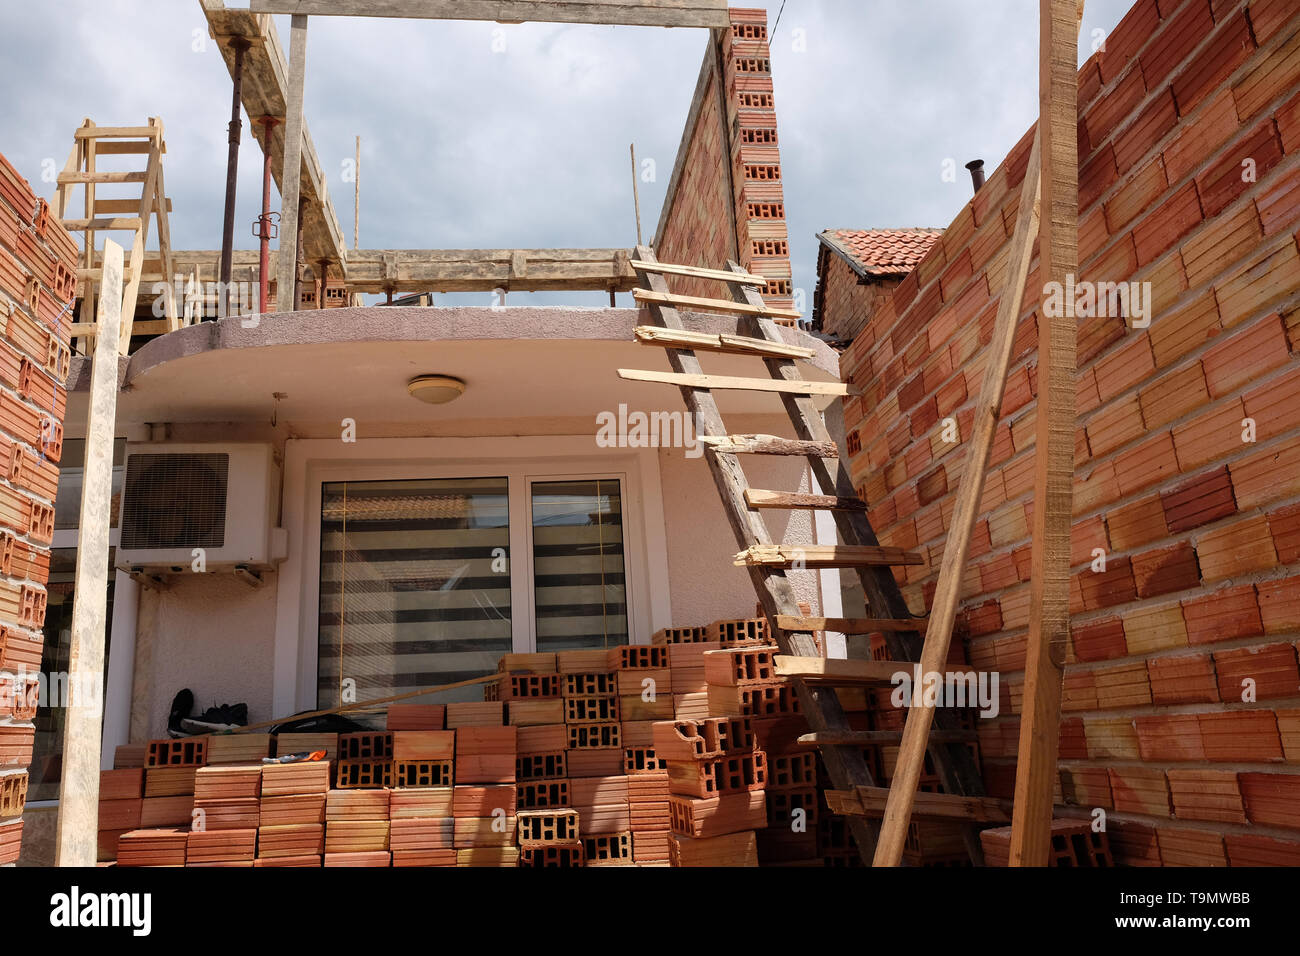 May 2019 - Home made ladder being used on a small construction work site in Sliven, Bulgaria, - Stock Image